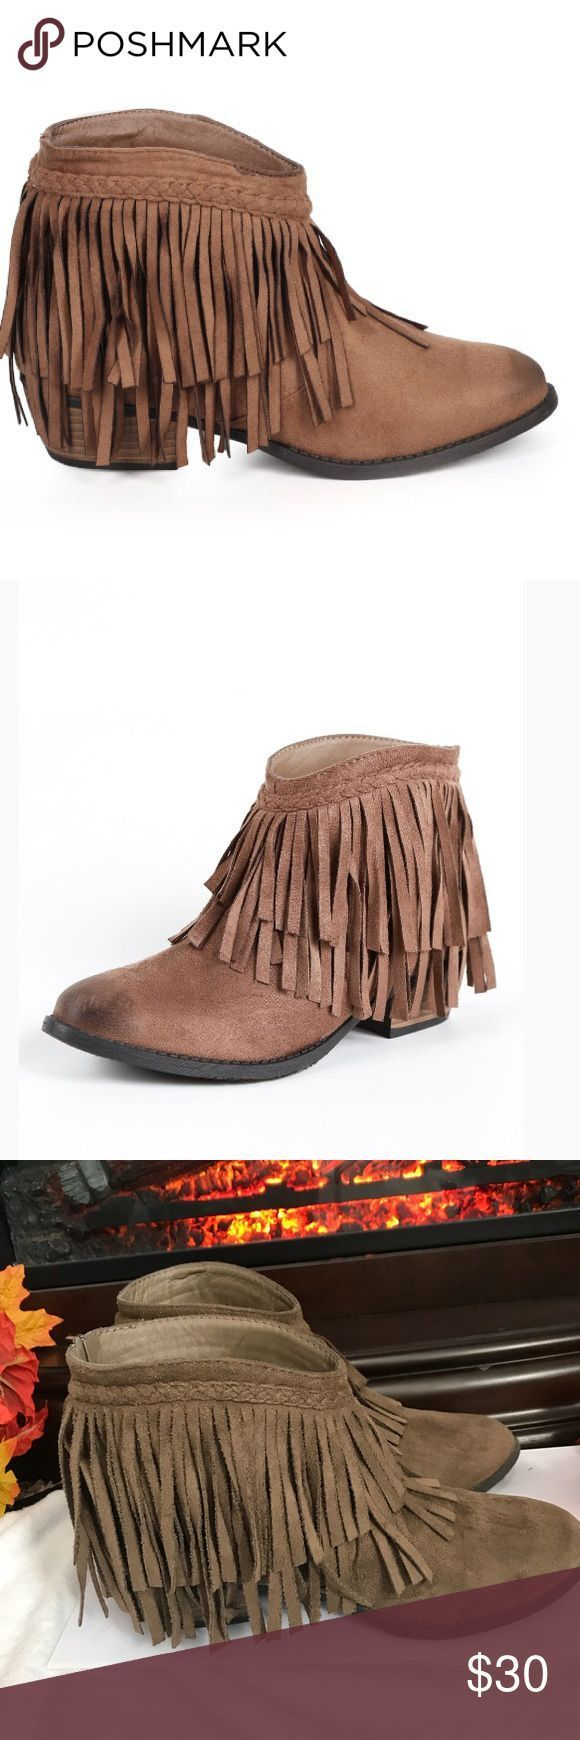 NATURE BREEZE NOMAD FRINGE ANKLE BOOT size 6 NATURE BREEZE NOMAD FRINGE ANKLE BO #skinnyjeansandankleboots NATURE BREEZE NOMAD FRINGE ANKLE BOOT size 6 NATURE BREEZE NOMAD FRINGE ANKLE BO #skinnyjeansandankleboots